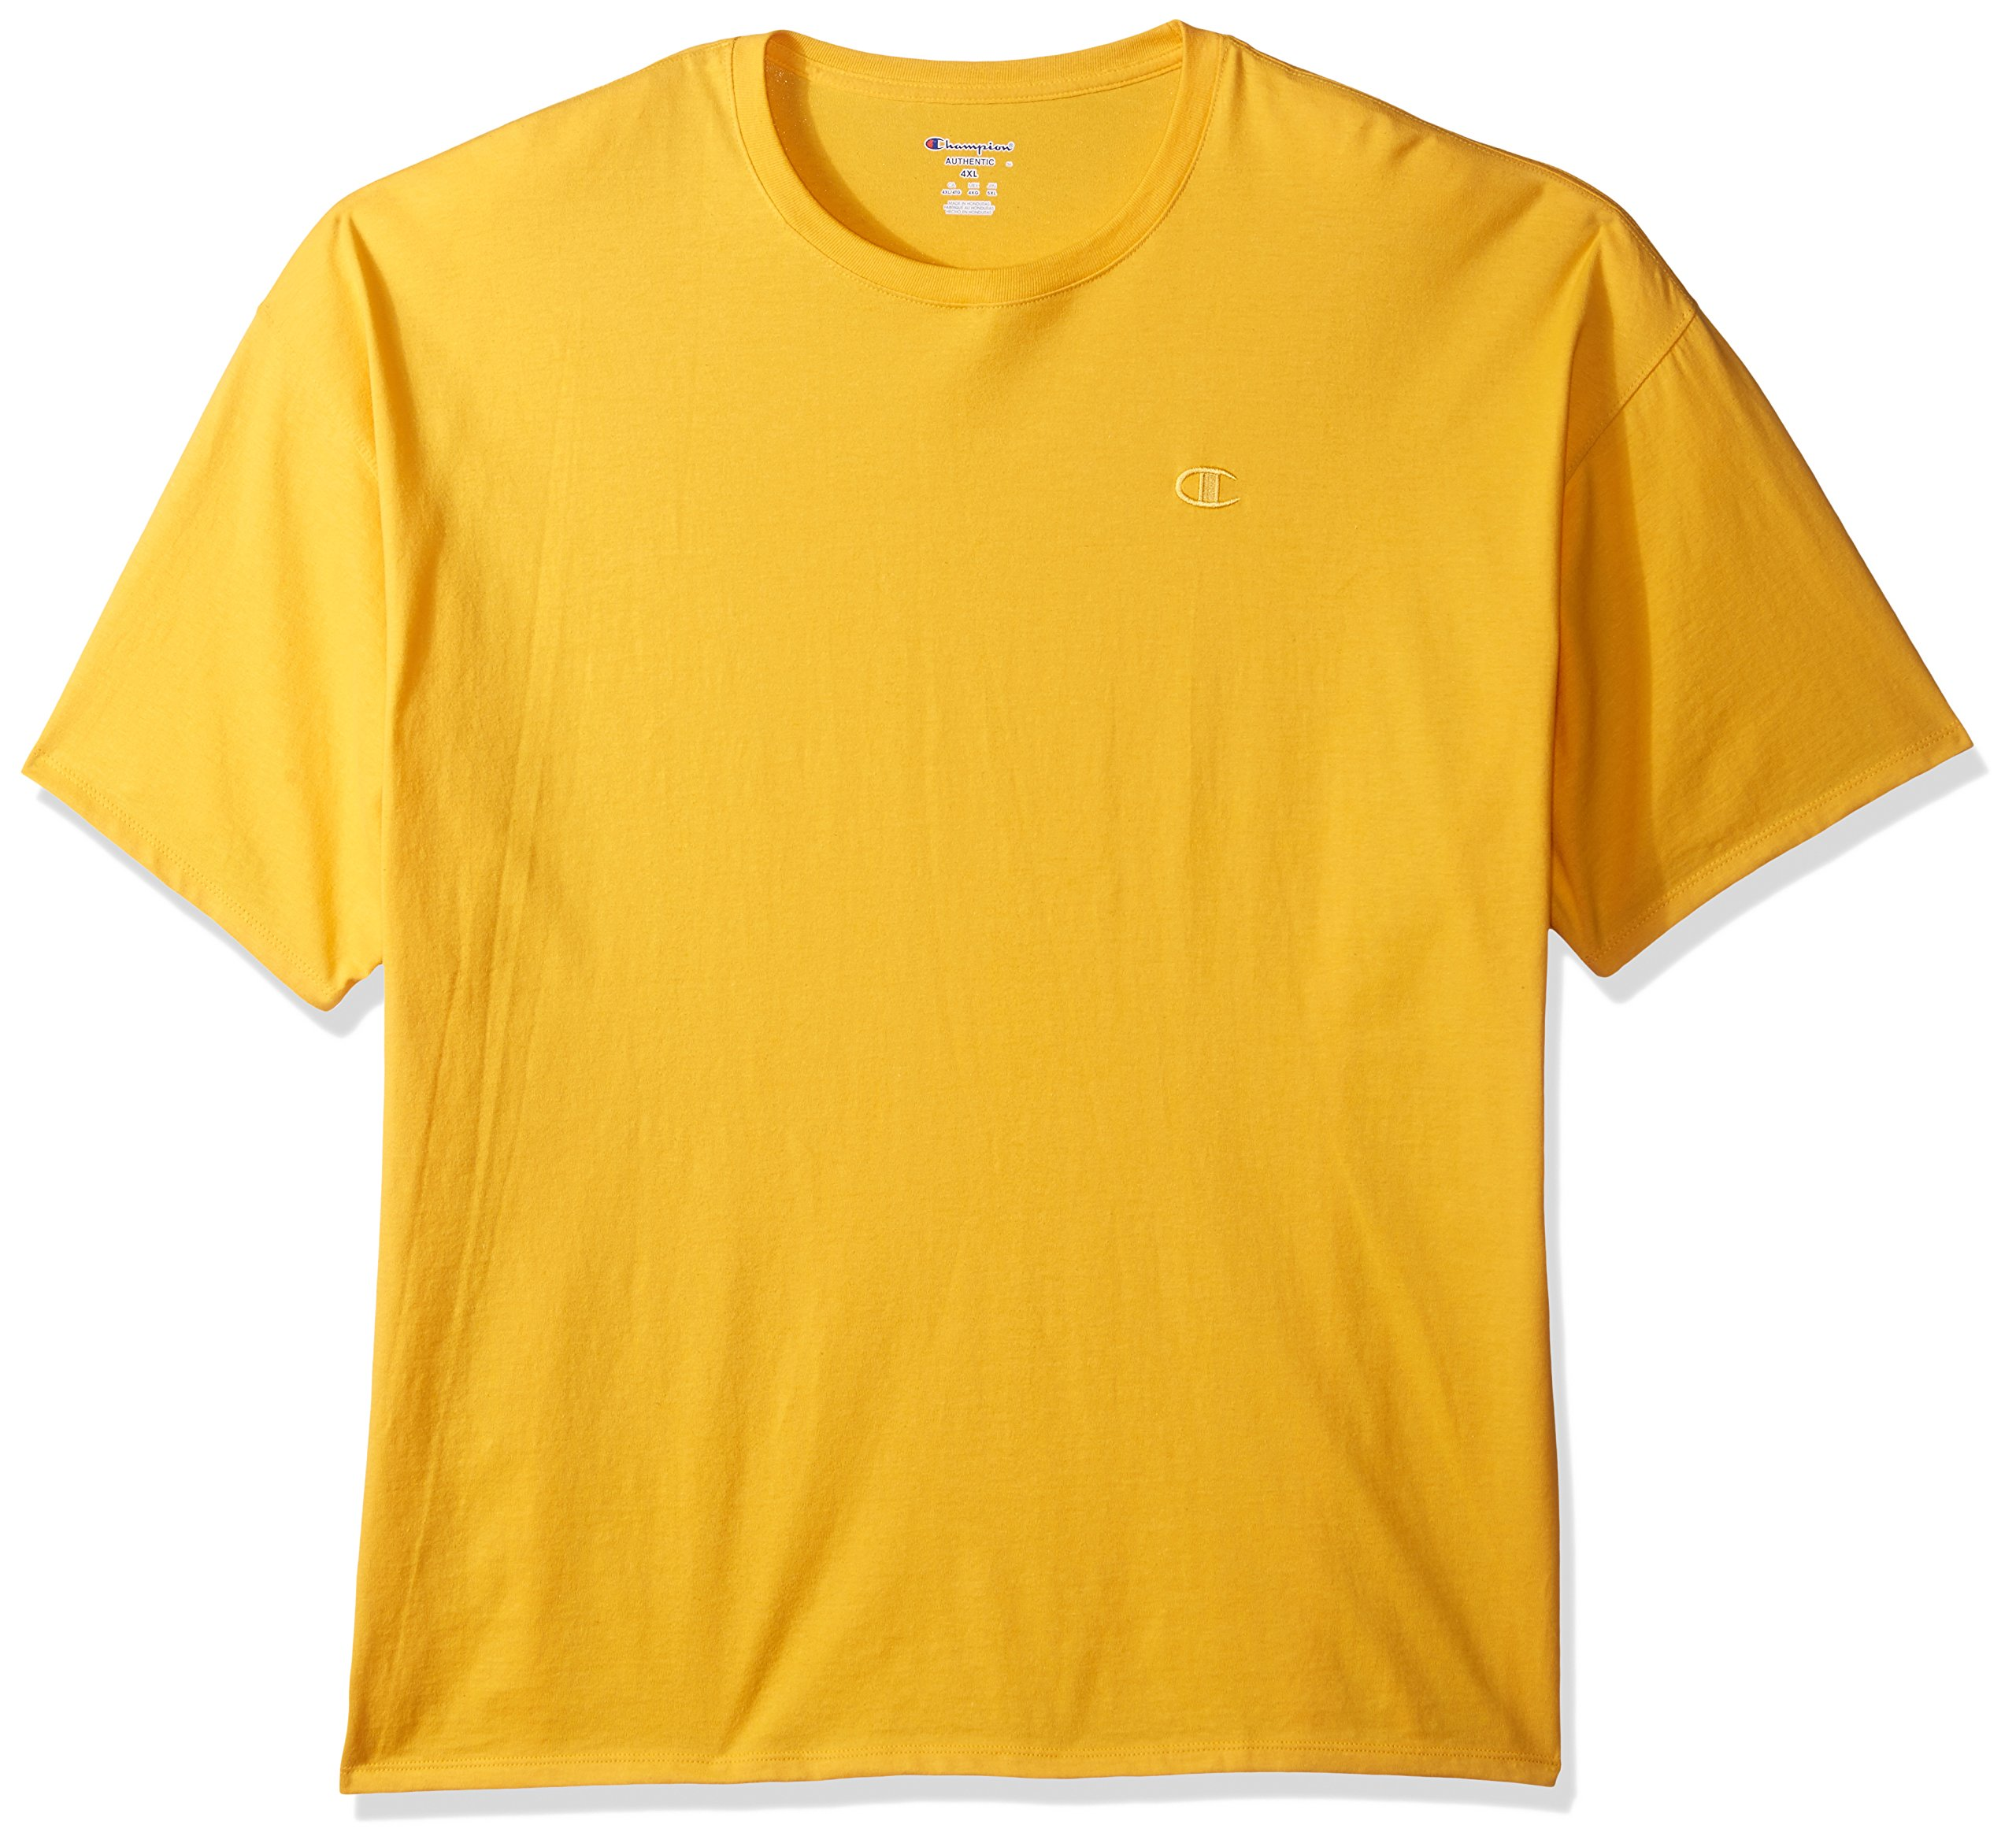 Champion Men's Classic Jersey T-Shirt, Team Gold, L by Champion